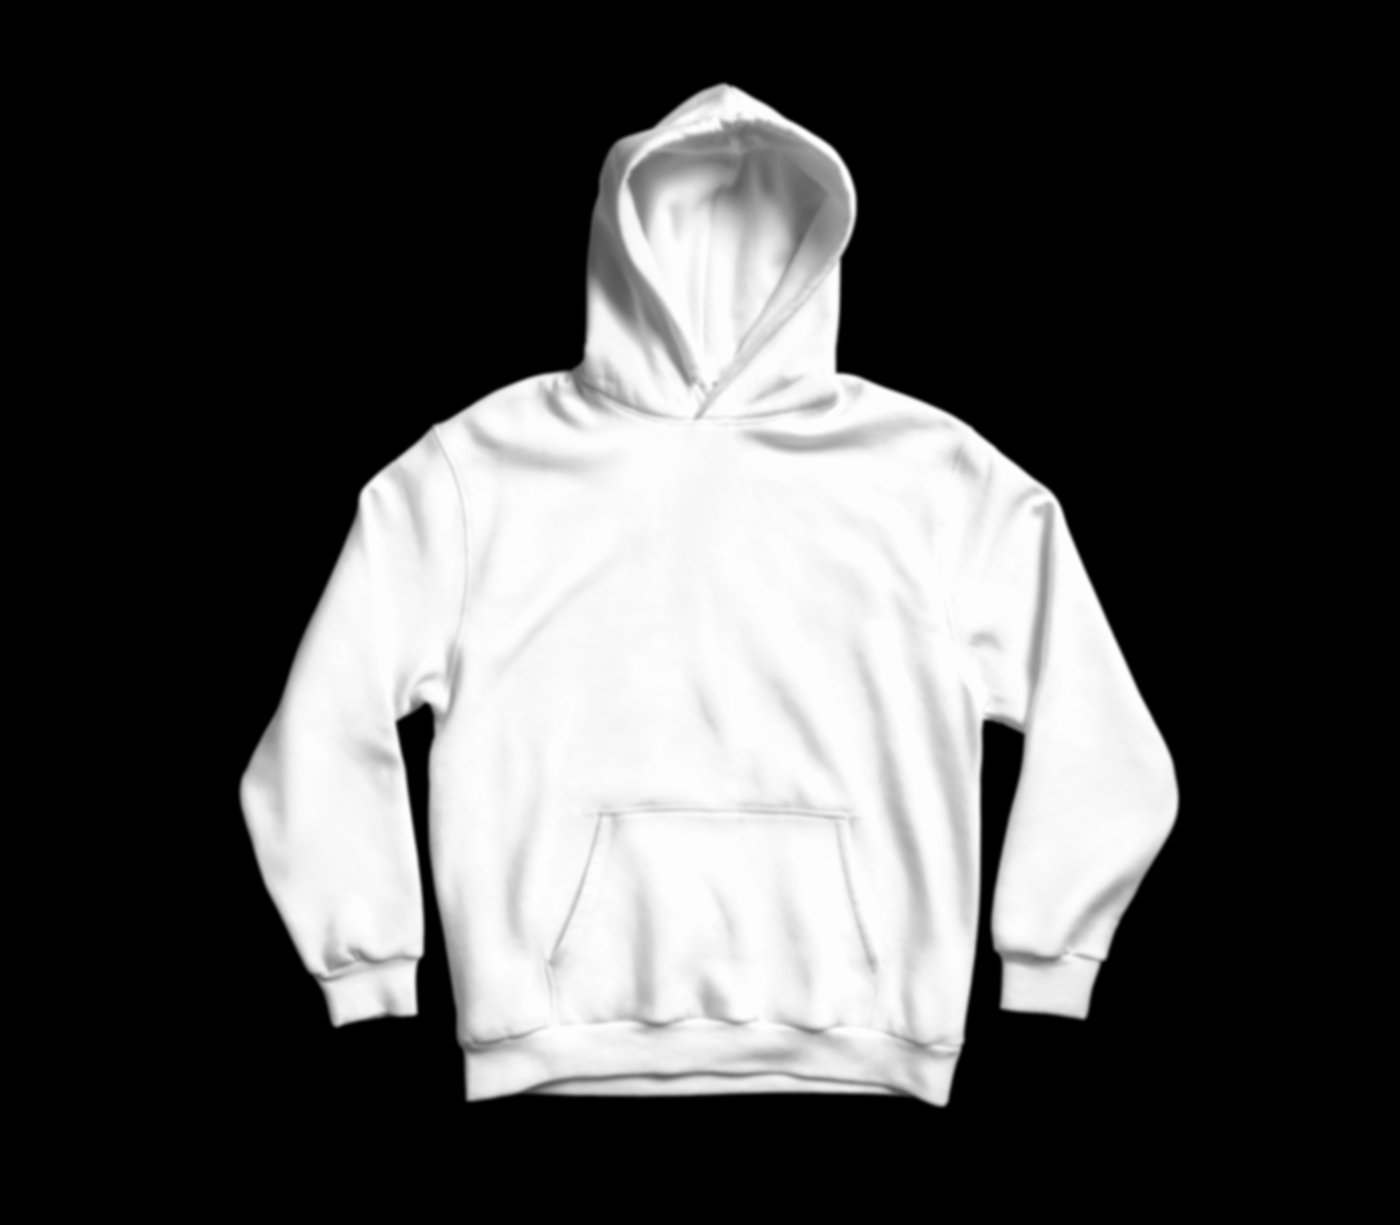 Free Hoodie Mockup Psd Unique Hoo Mockup Psd On Behance